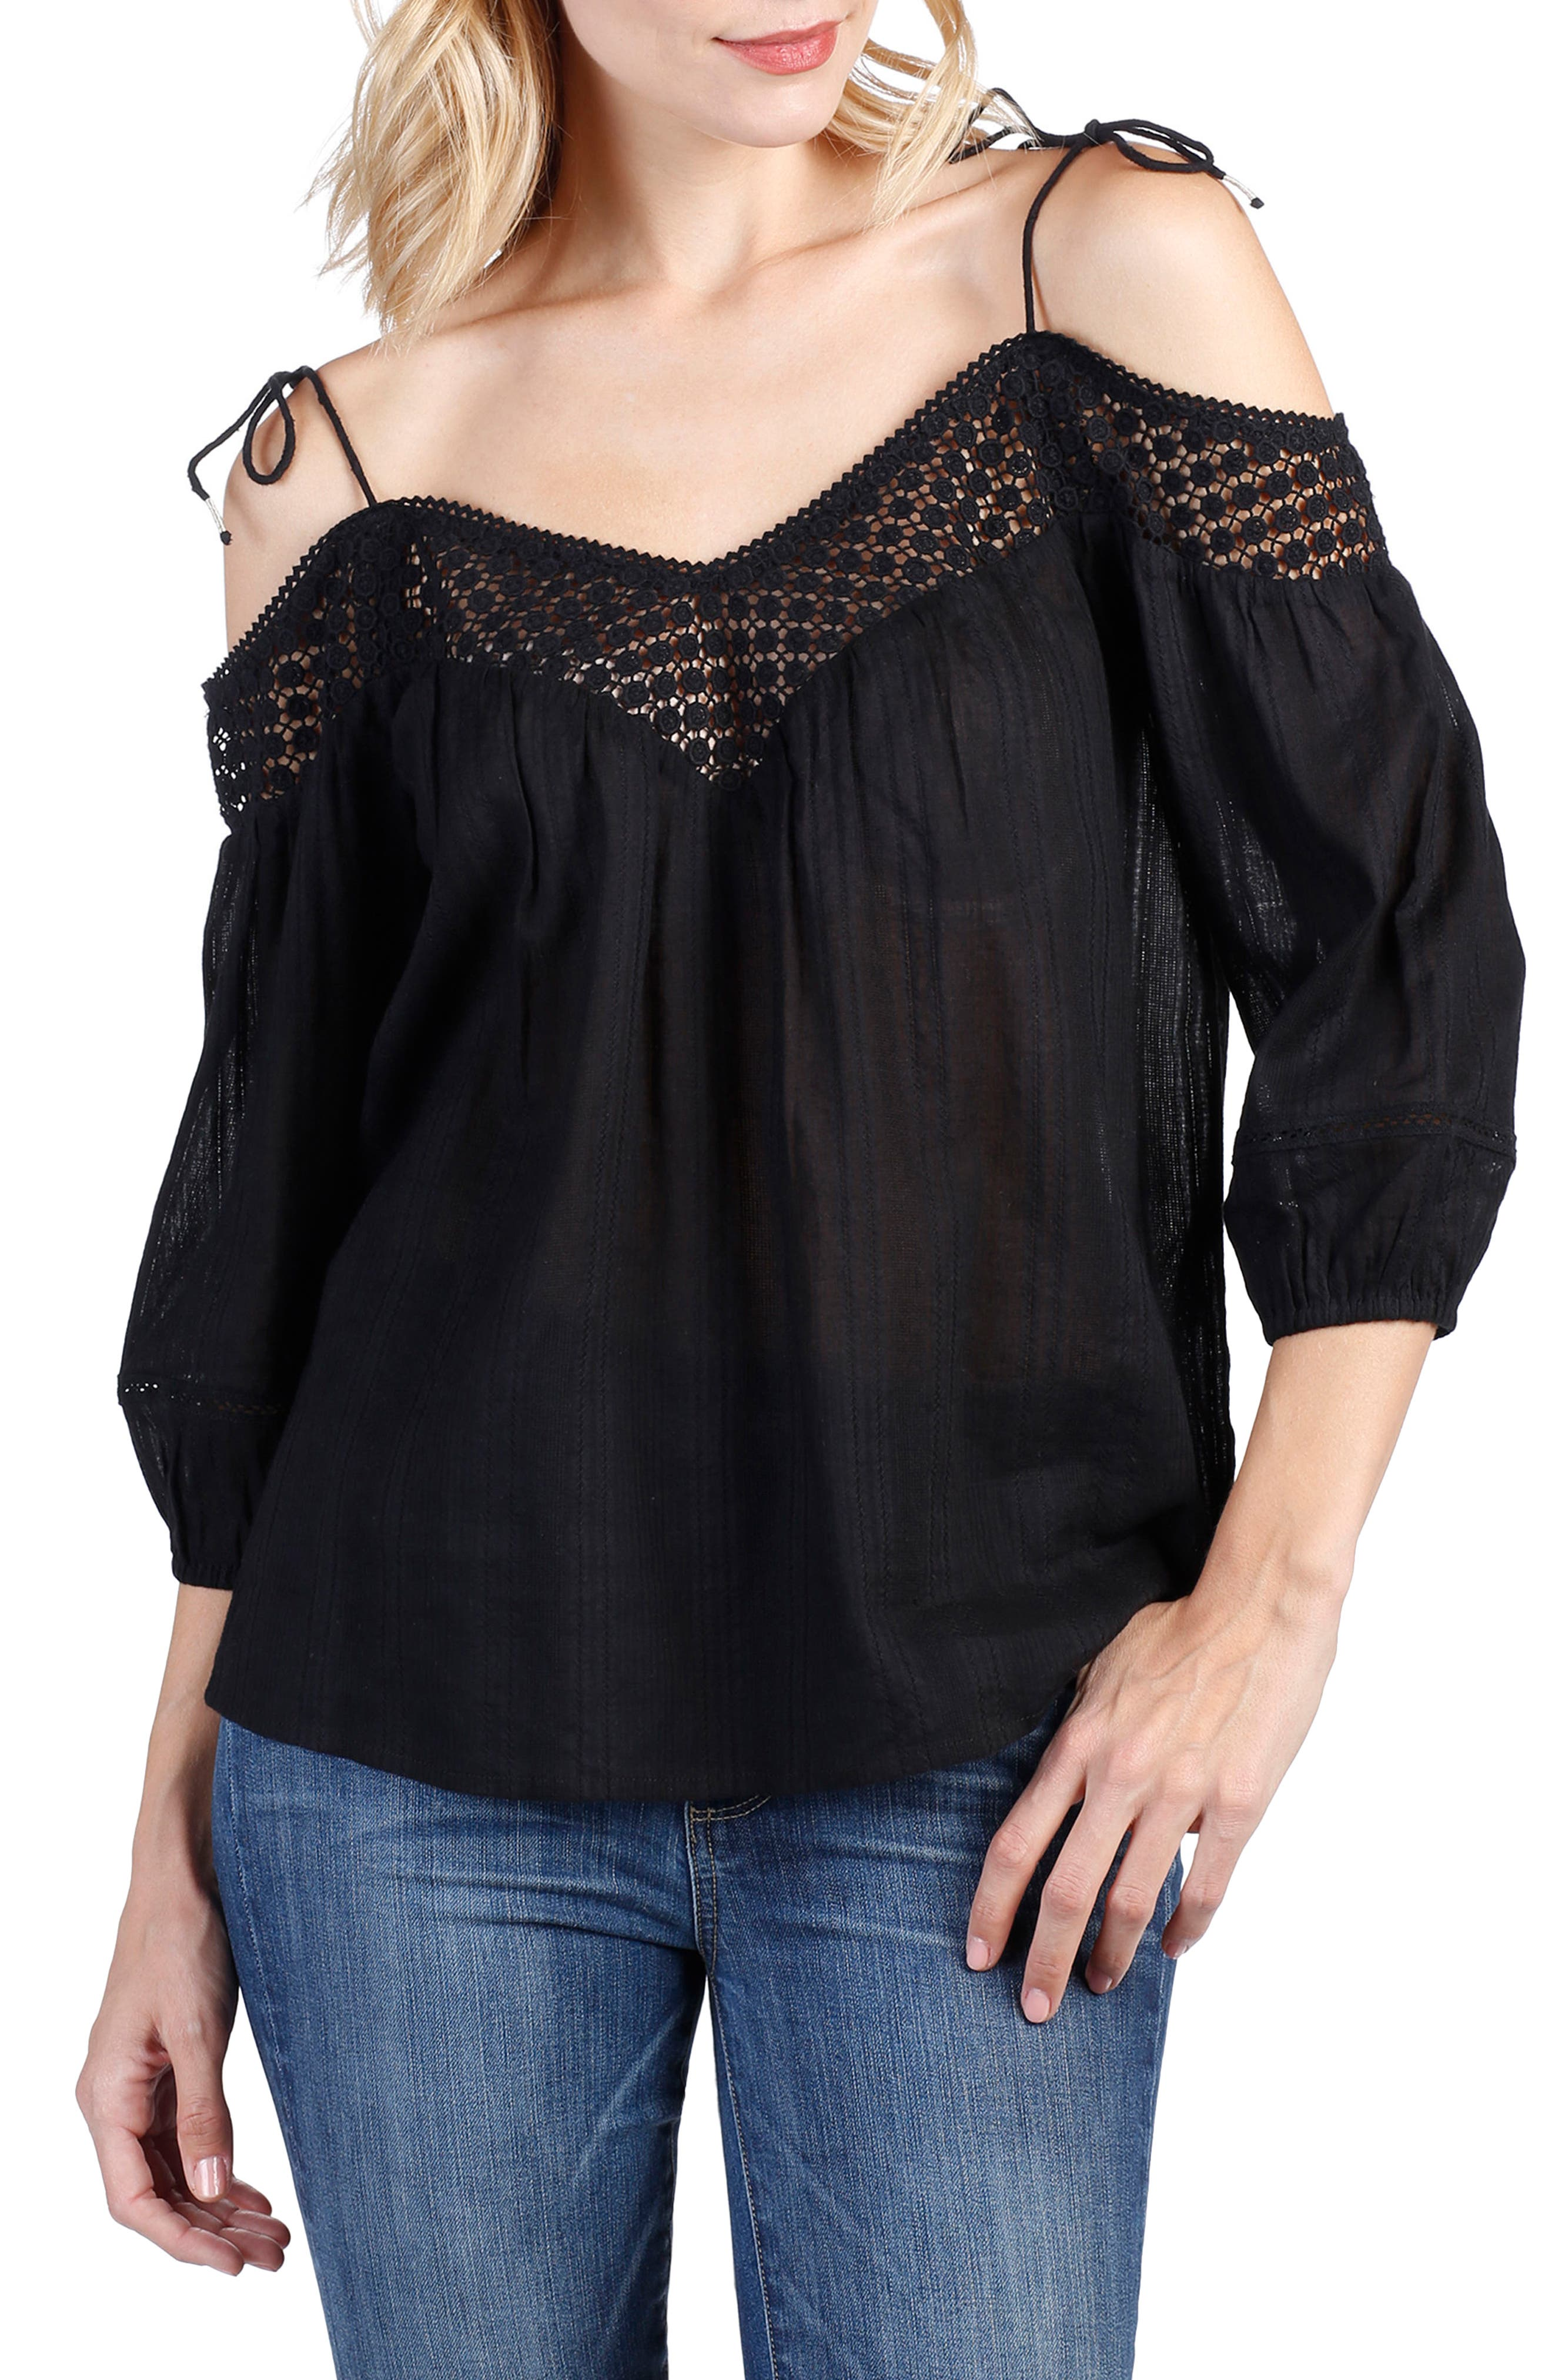 Polly Off the Shoulder Blouse,                         Main,                         color, Black